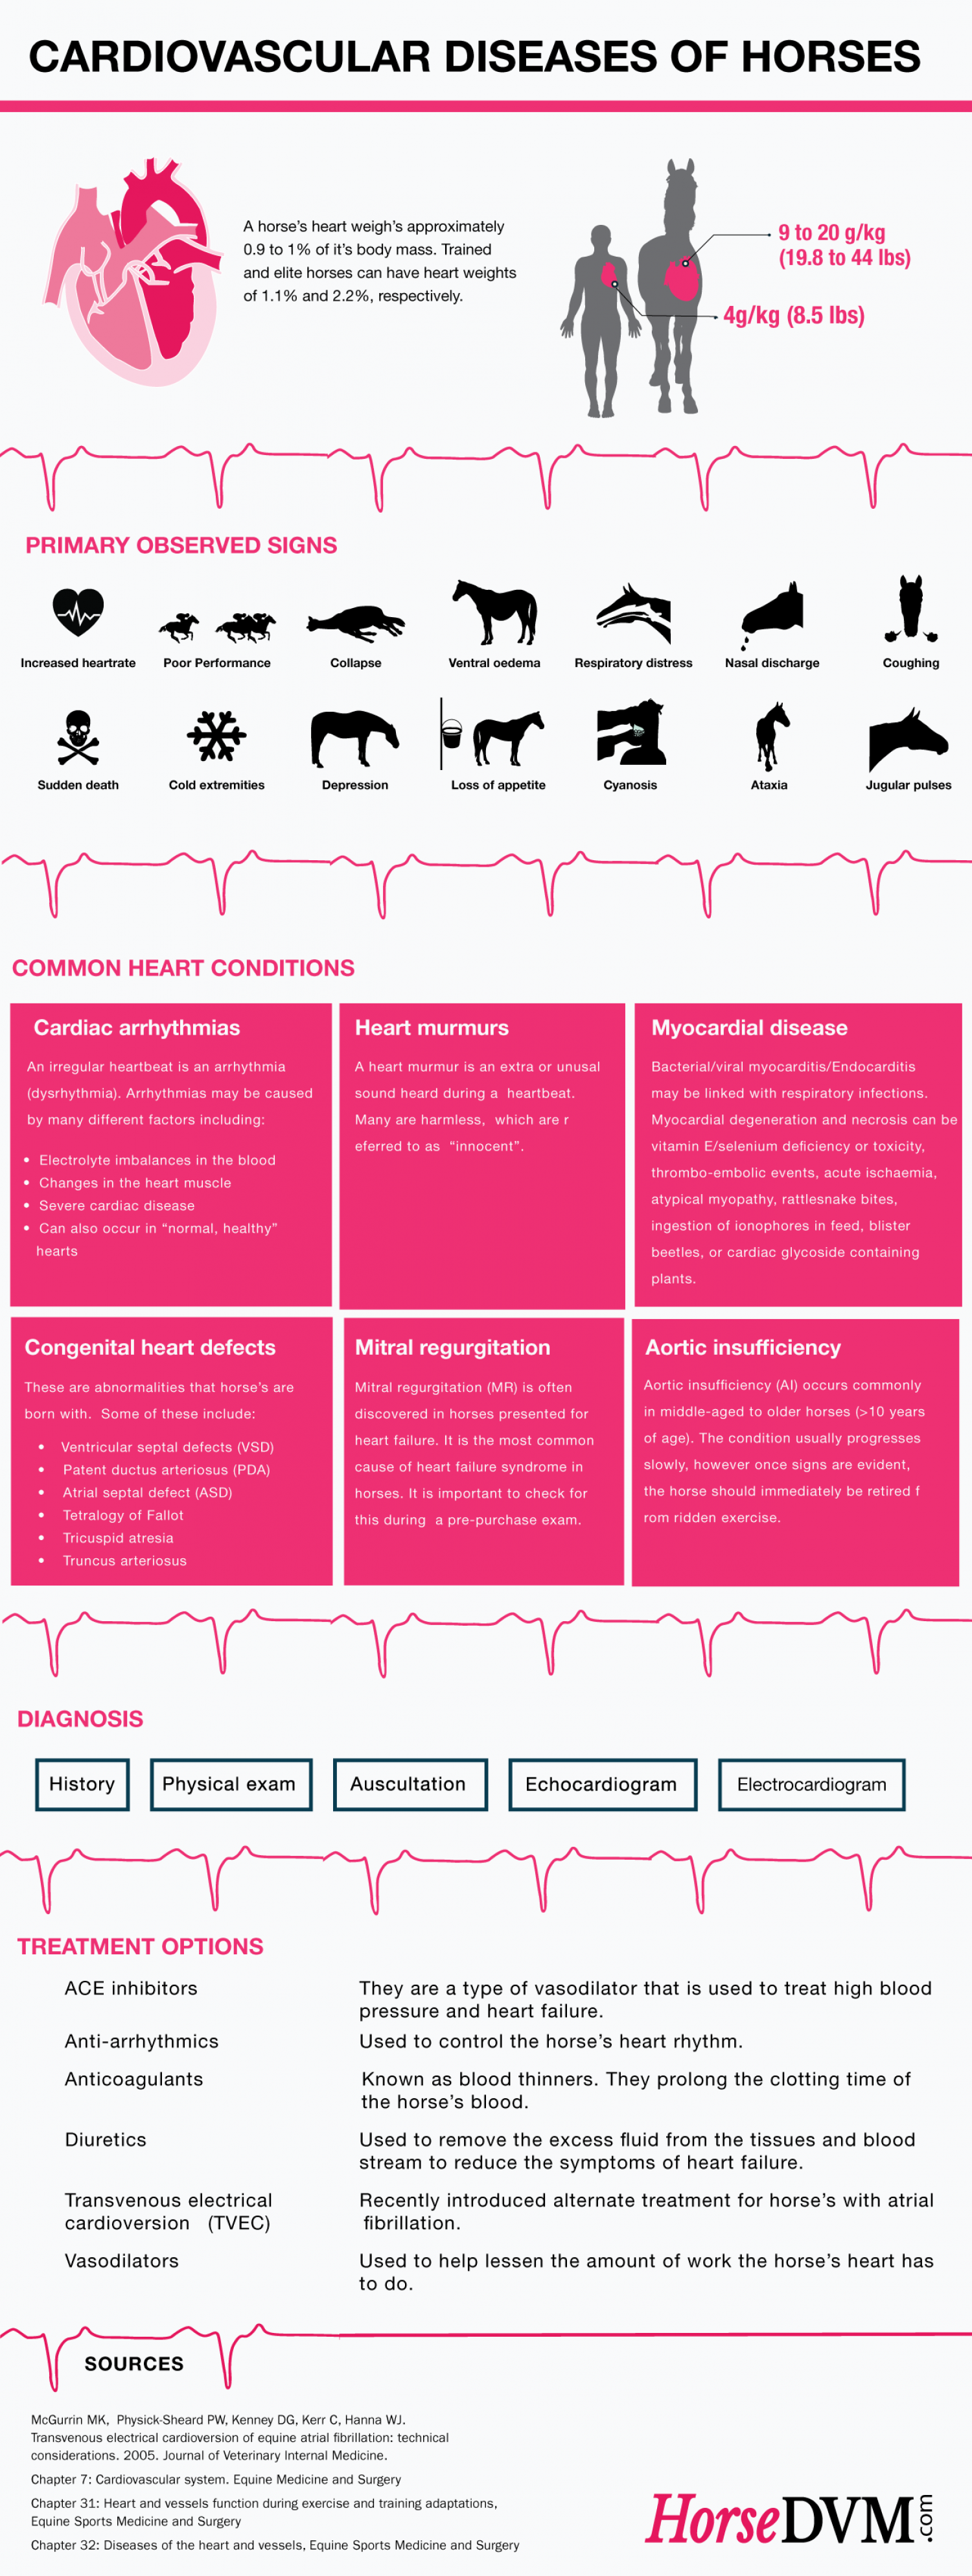 Cardiovascular Diseases of Horses Infographic